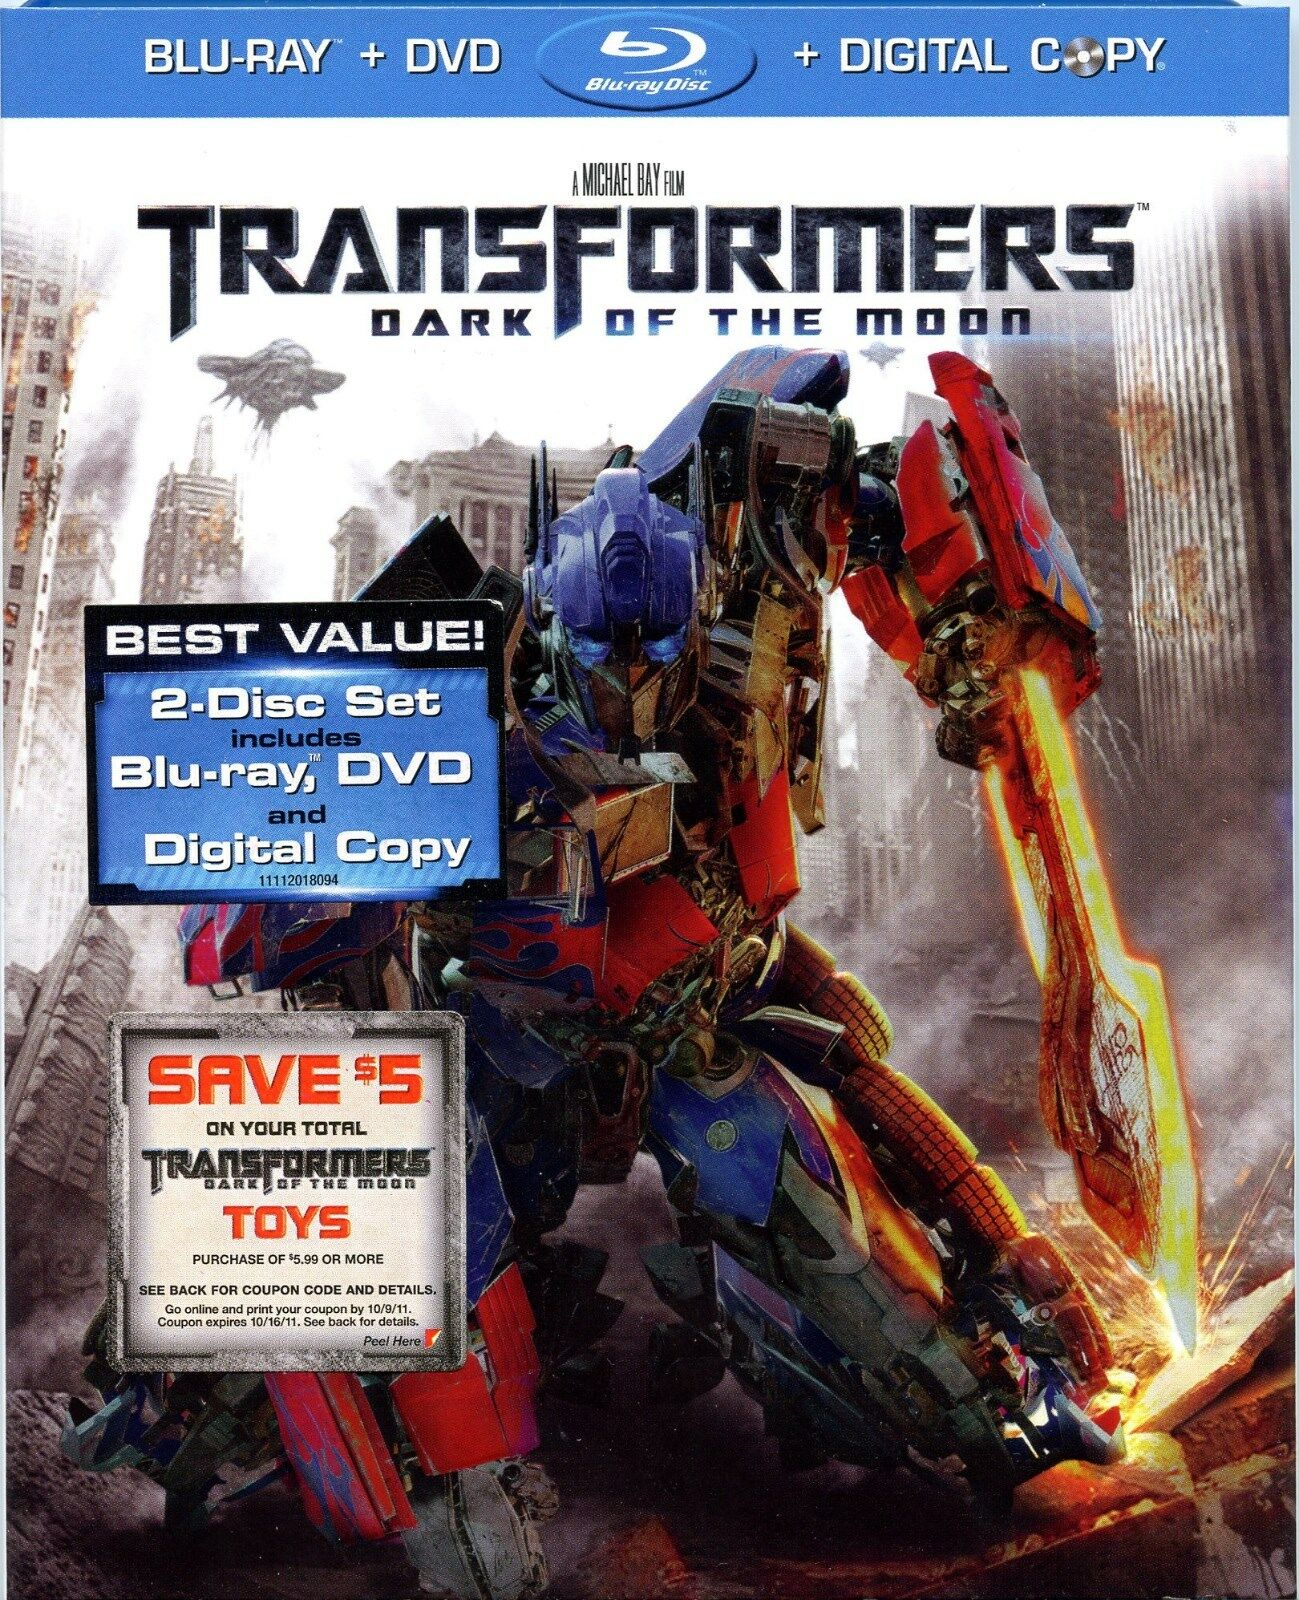 Blu-Ray Slip Covers! HUGE Selection! NO DISCS...NO CASES...SLIP COVER ONLY!